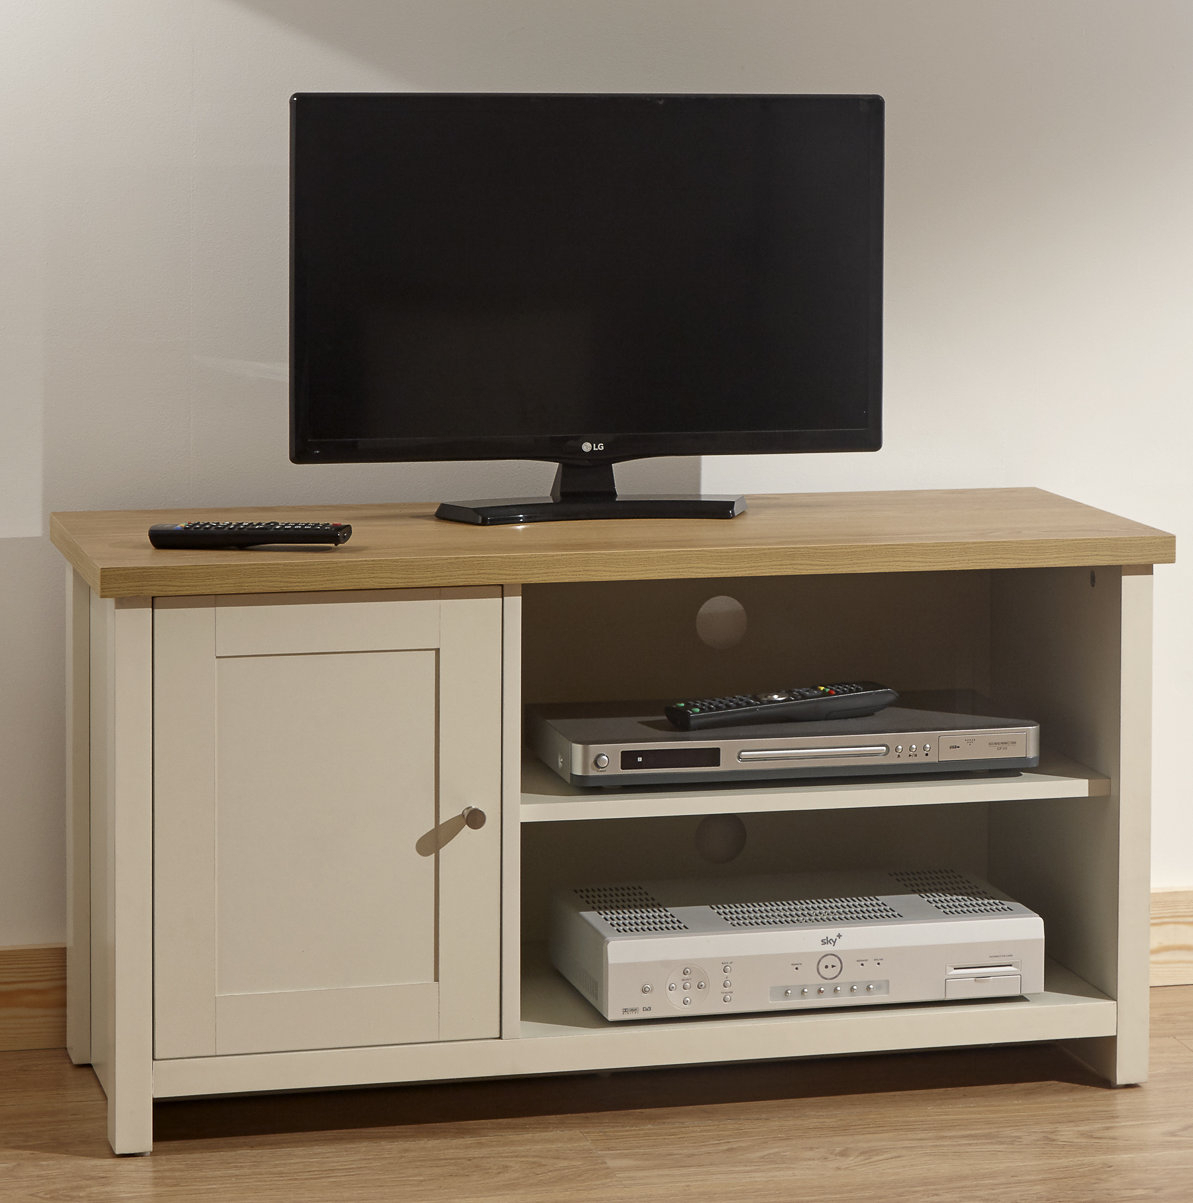 Mirrored Tv Stand | Wayfair.co.uk within Valencia 70 Inch Tv Stands (Image 10 of 30)